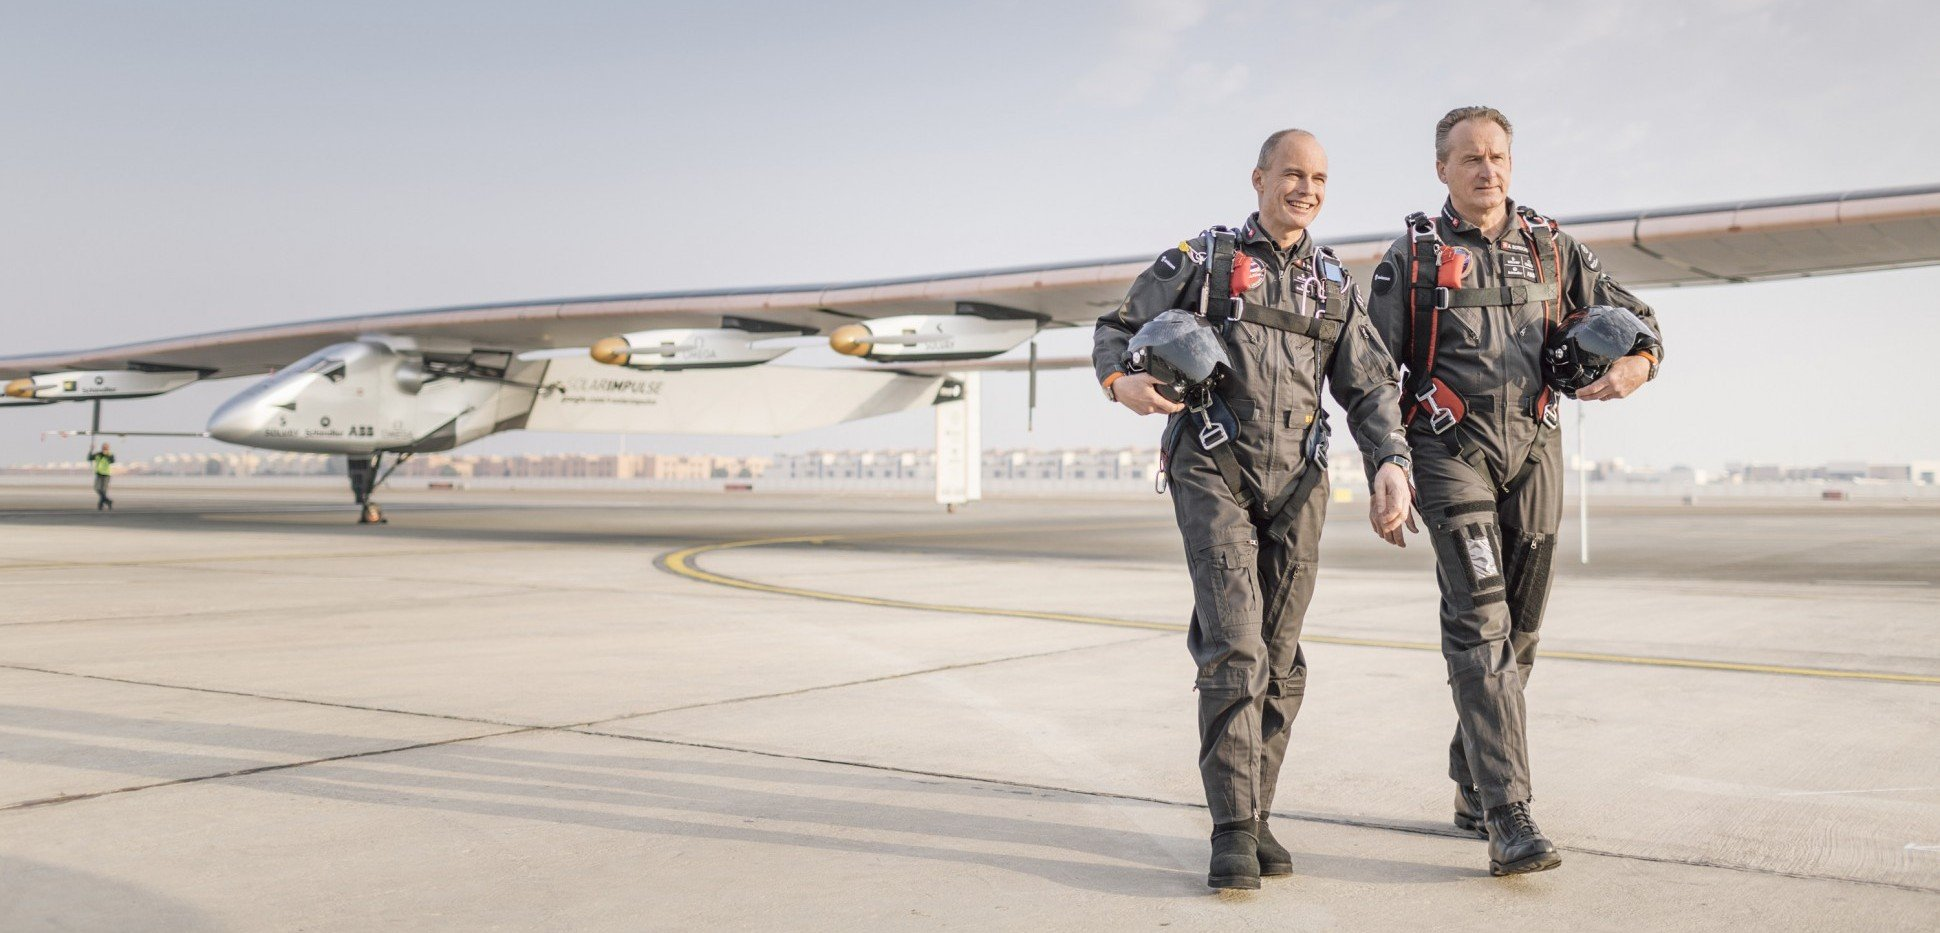 2015_01_18_Solar_Impulse_2_official_portrait_Ackermann_NAK_2844-1940x1293